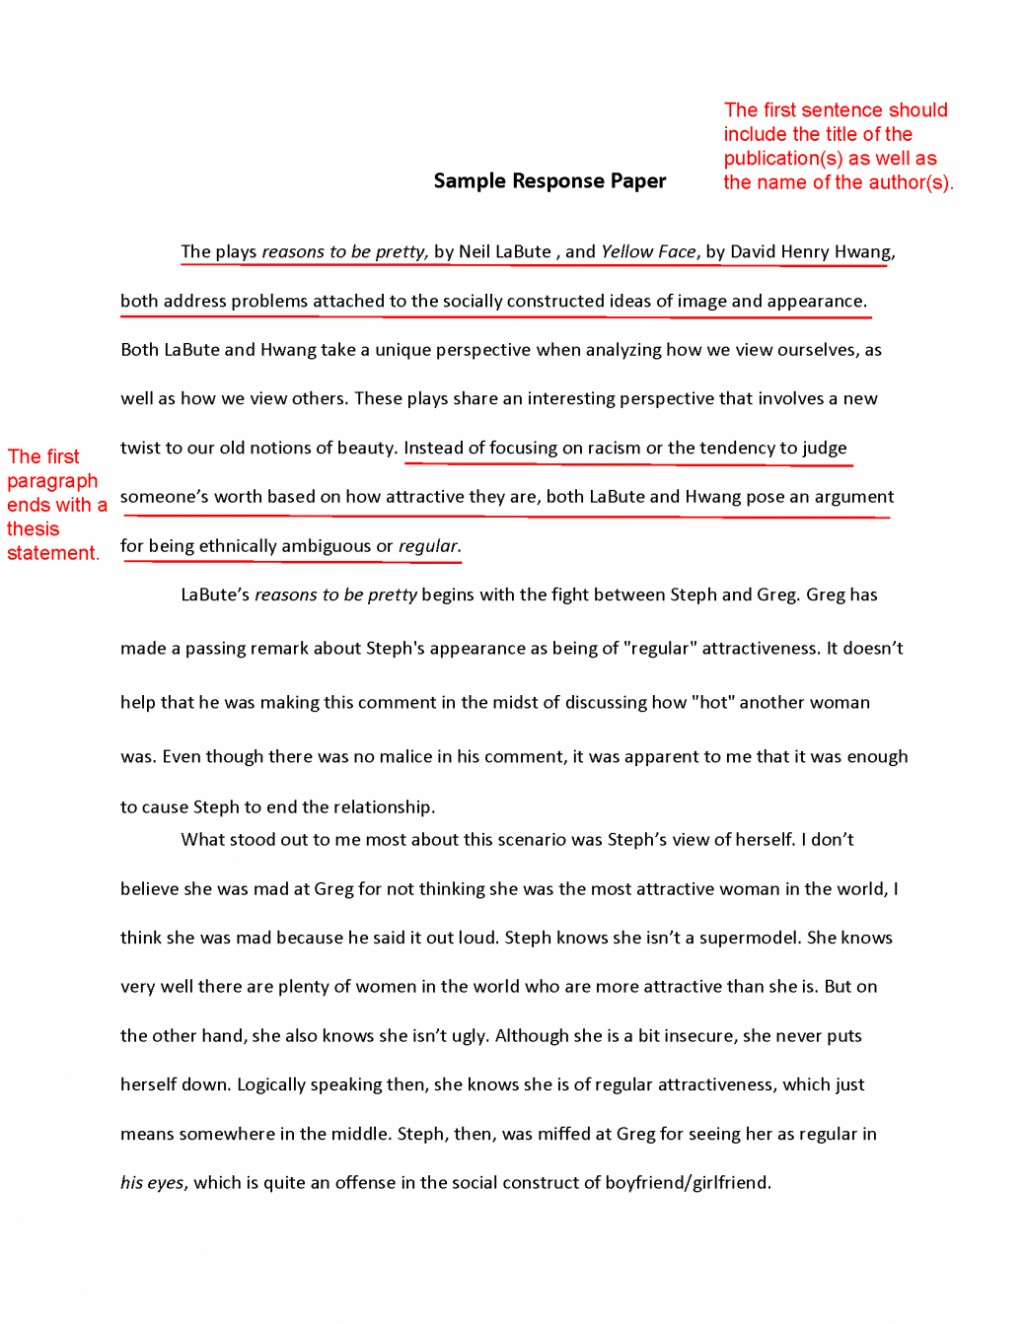 001 Essay Template Responce Paper College Board Synthesis Example History Sample Essays Papers Education And 1038x1343 English Research Impressive Format Mla Large